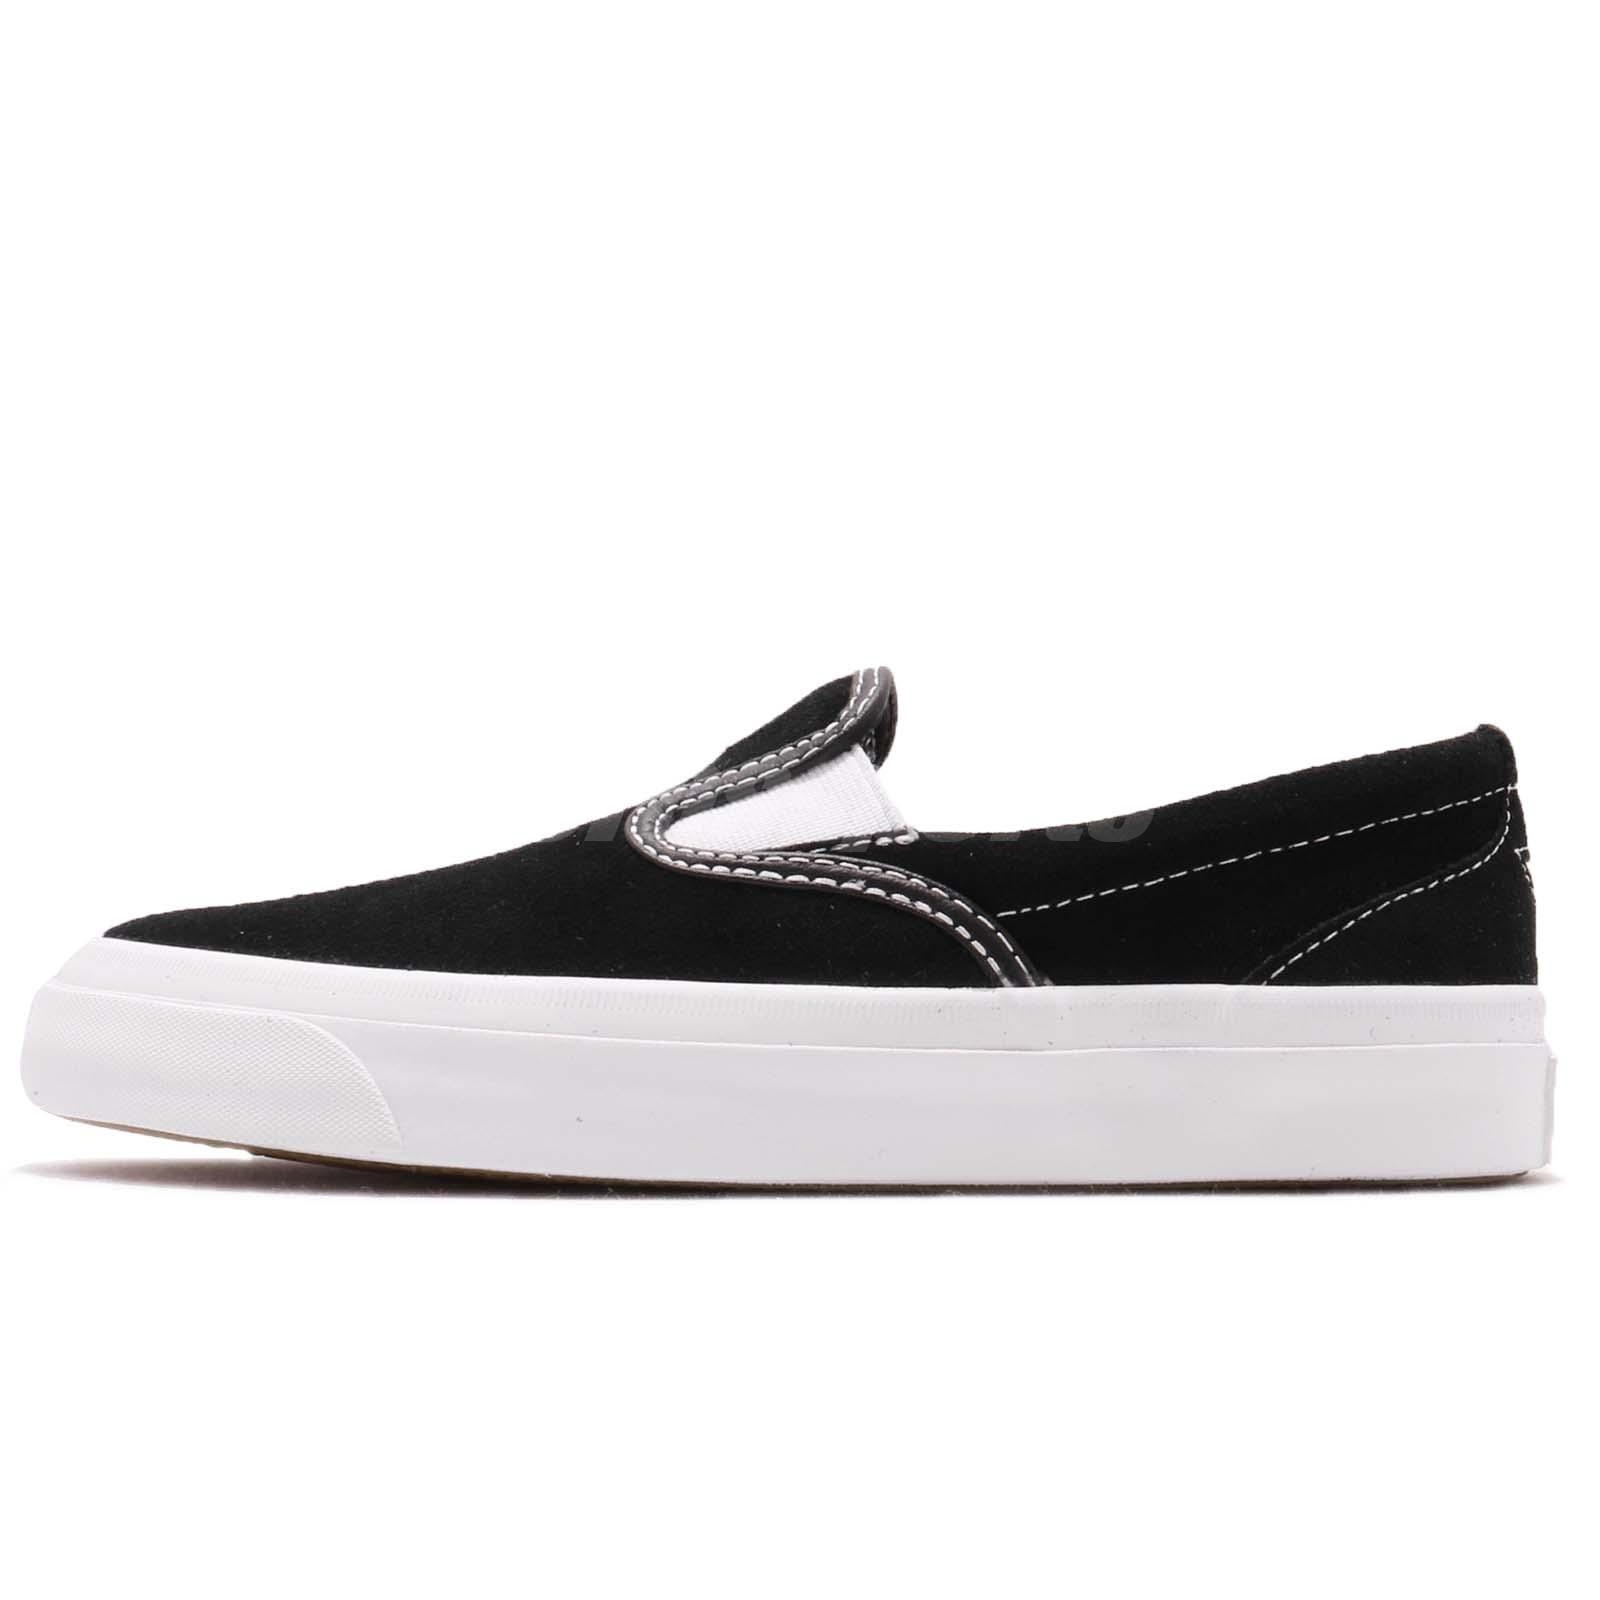 Converse One Star CC Slip On Black White Men Casual Shoes Sneakers 160545C c647ea1bd49